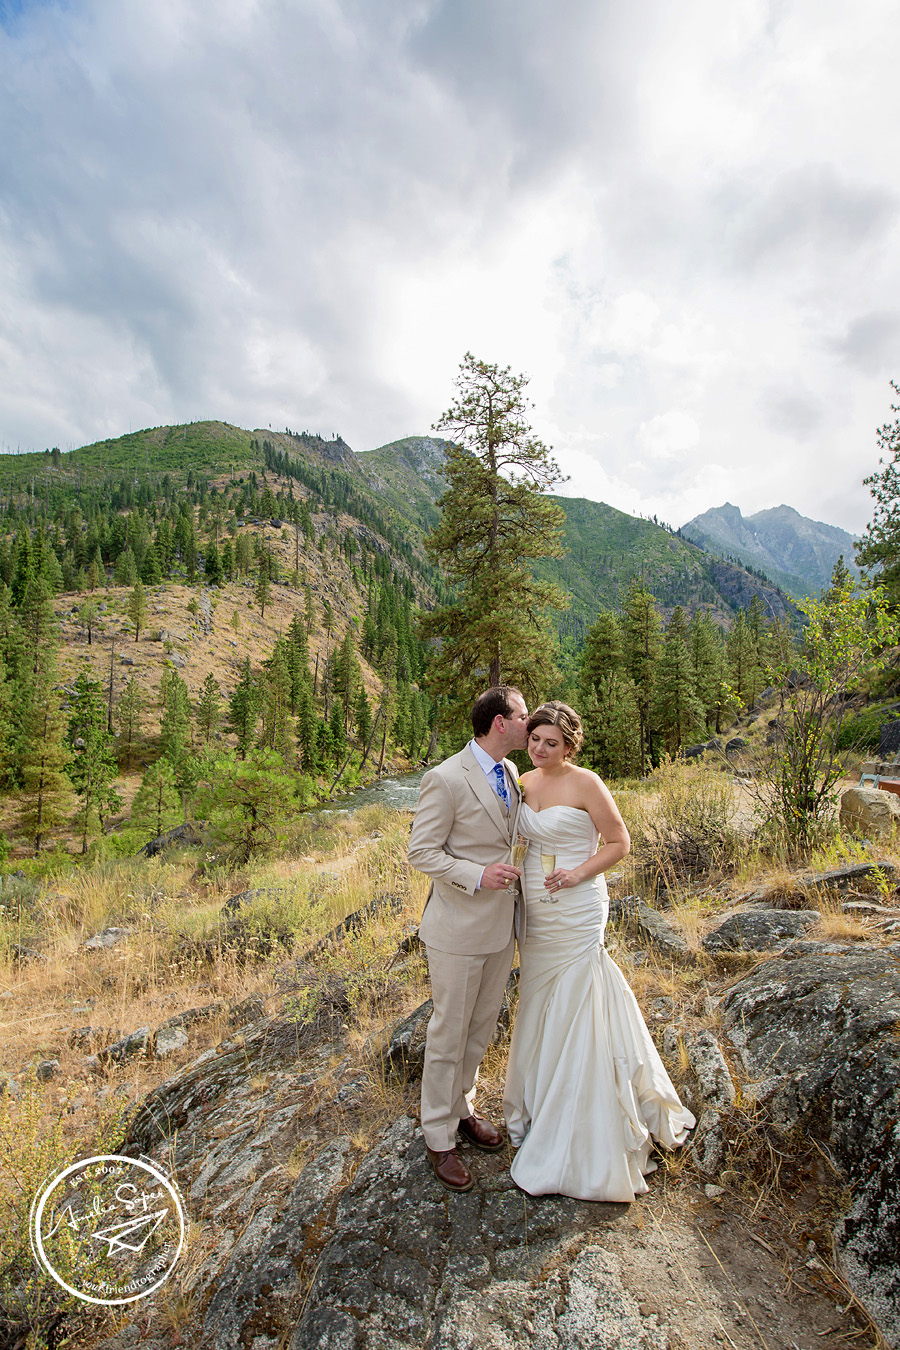 Rustic and scenic Leavenworth Wedding at Sleeping Lady Resort